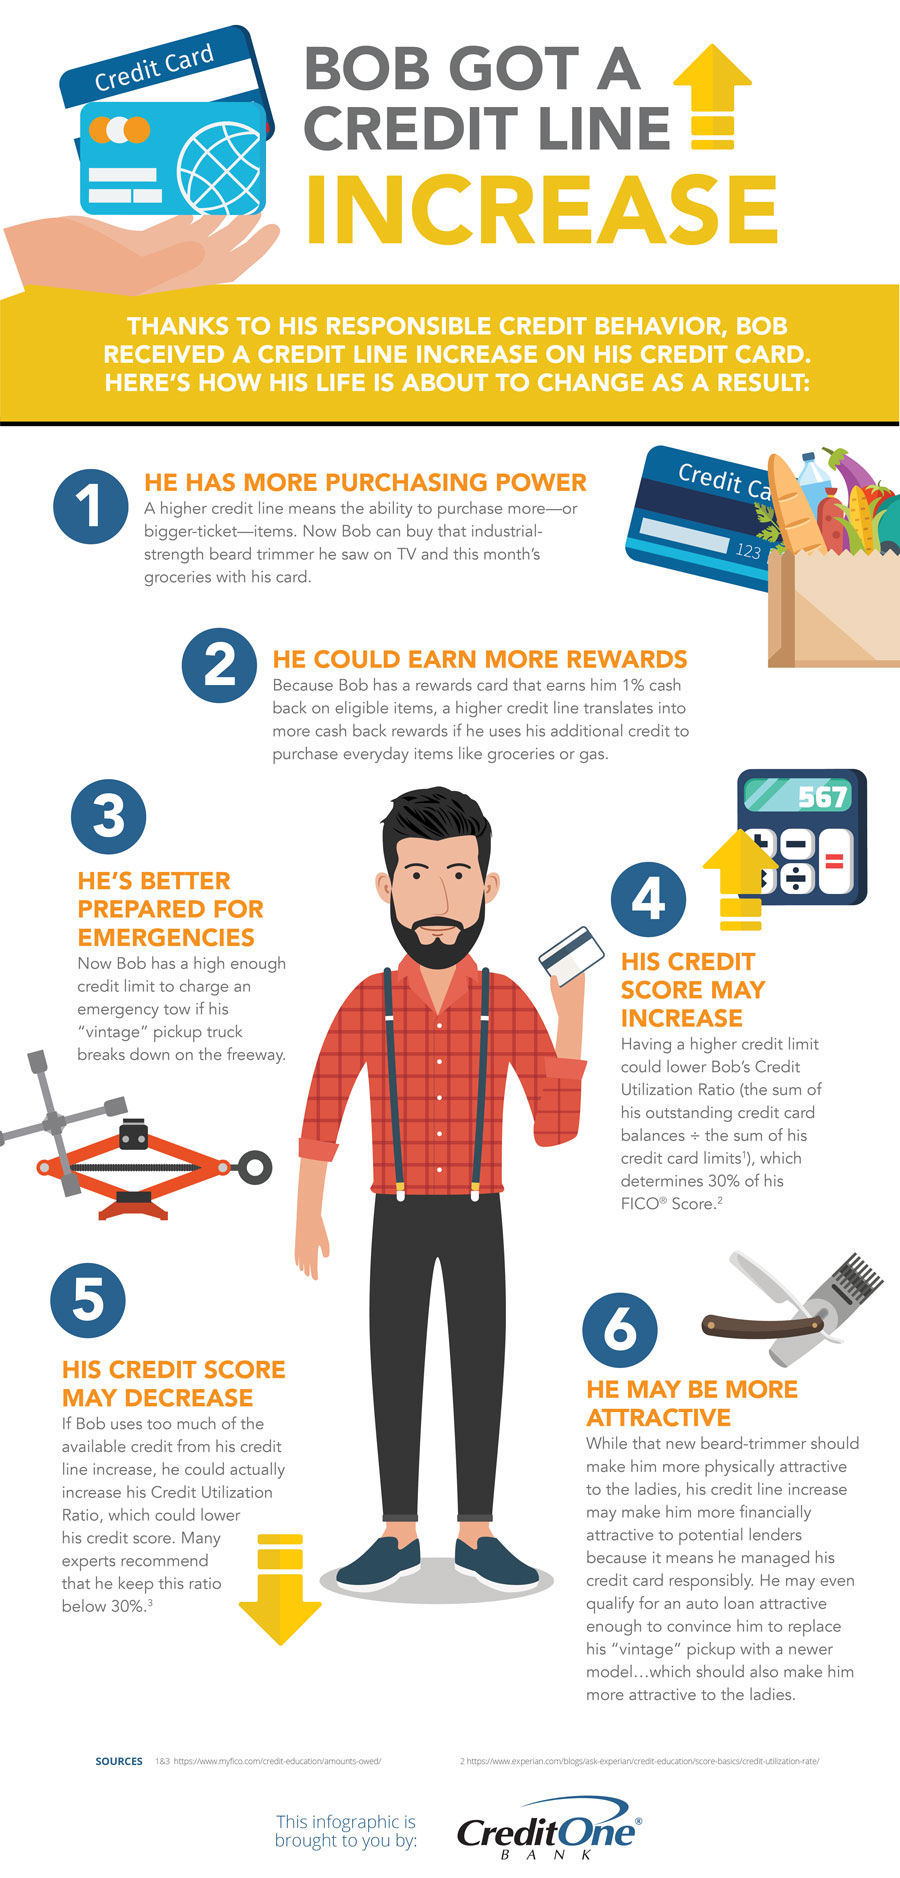 Bob Just Got a Credit Line Increase [Infographic]